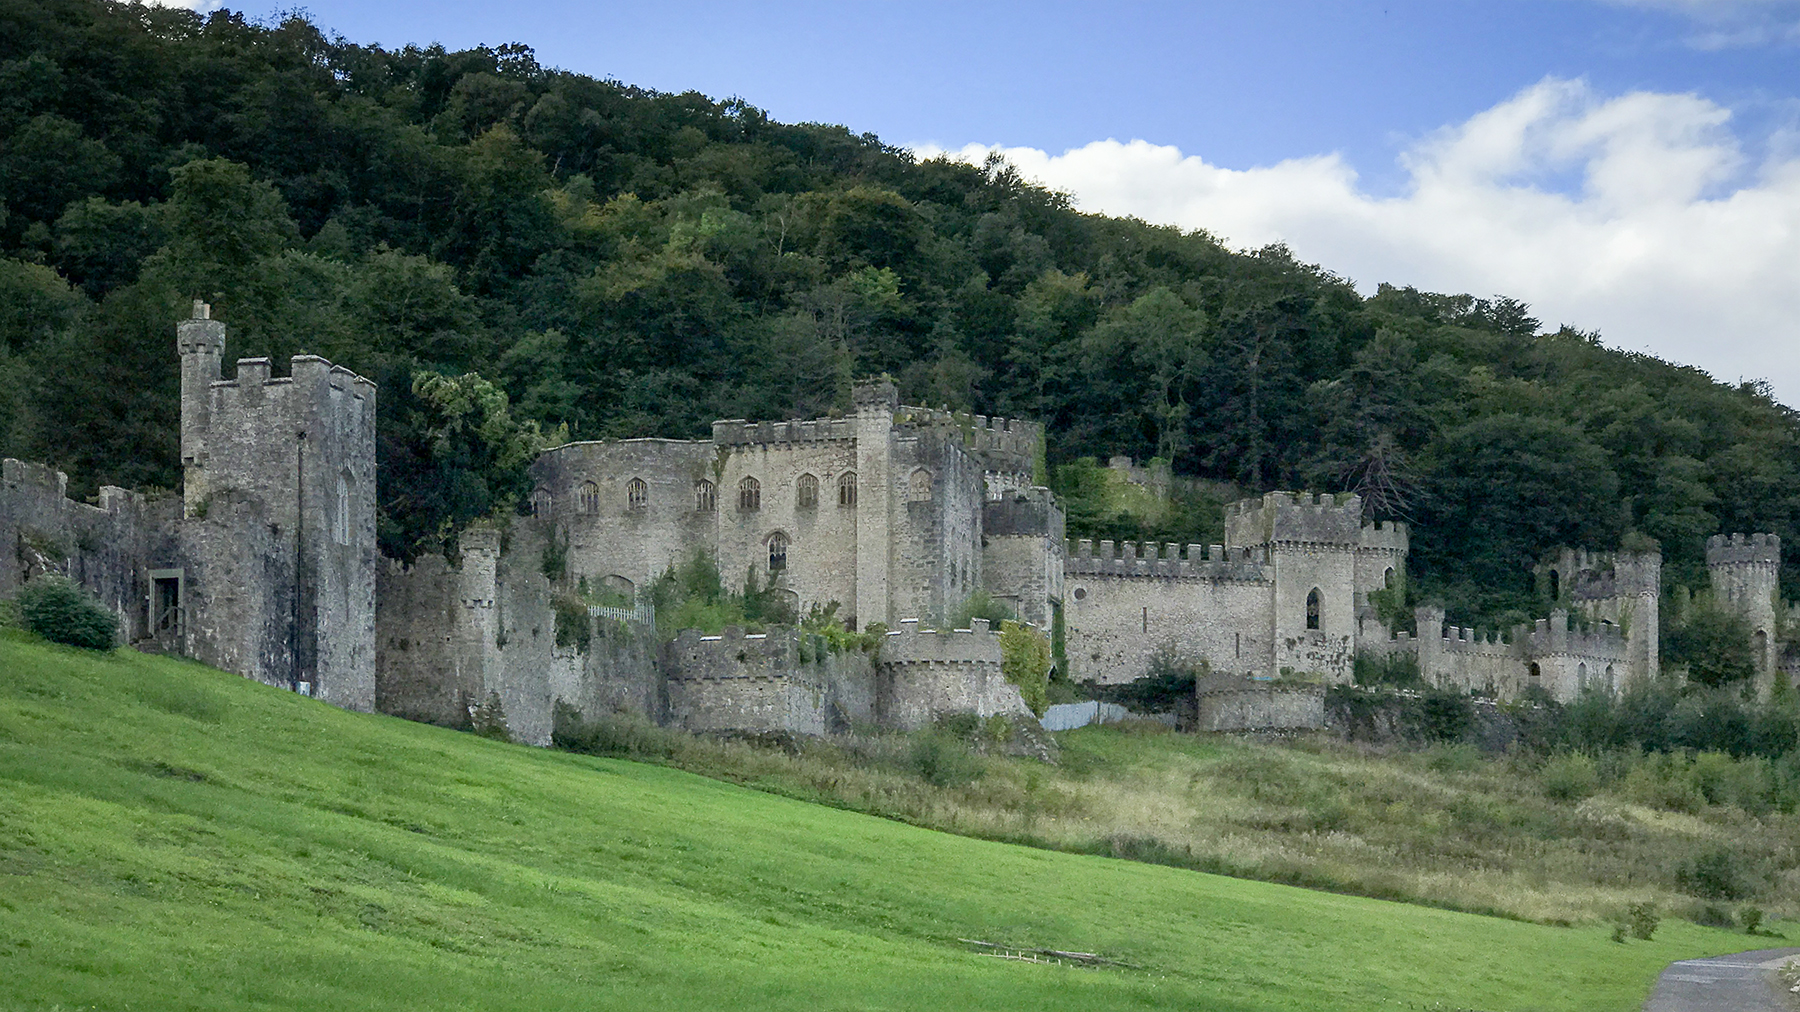 Gwyrch Castle is a Grade 1 listed building set in a wooded hillside overlooking the town of Abergele.